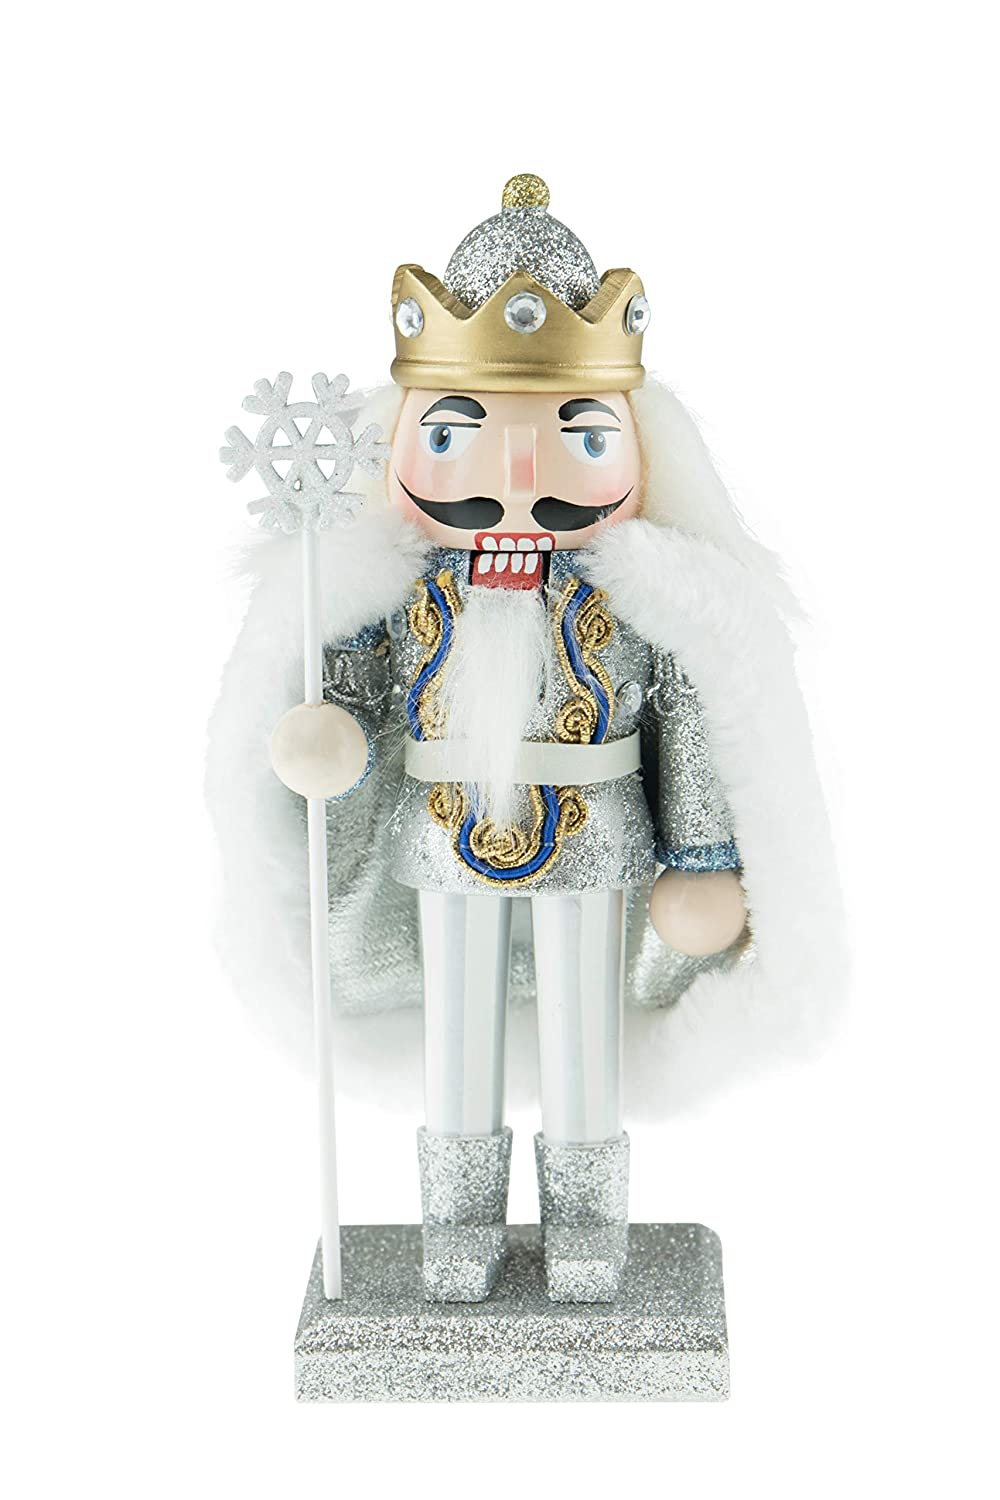 Clever Creations Chubby Snow King Nutcracker with Snowflake Staff Stands at 7 Tall 100/% Wood Sparkly Platform Holds a Royal King Wearing a Glittery Diamond Studded Crown with Fitting Cape